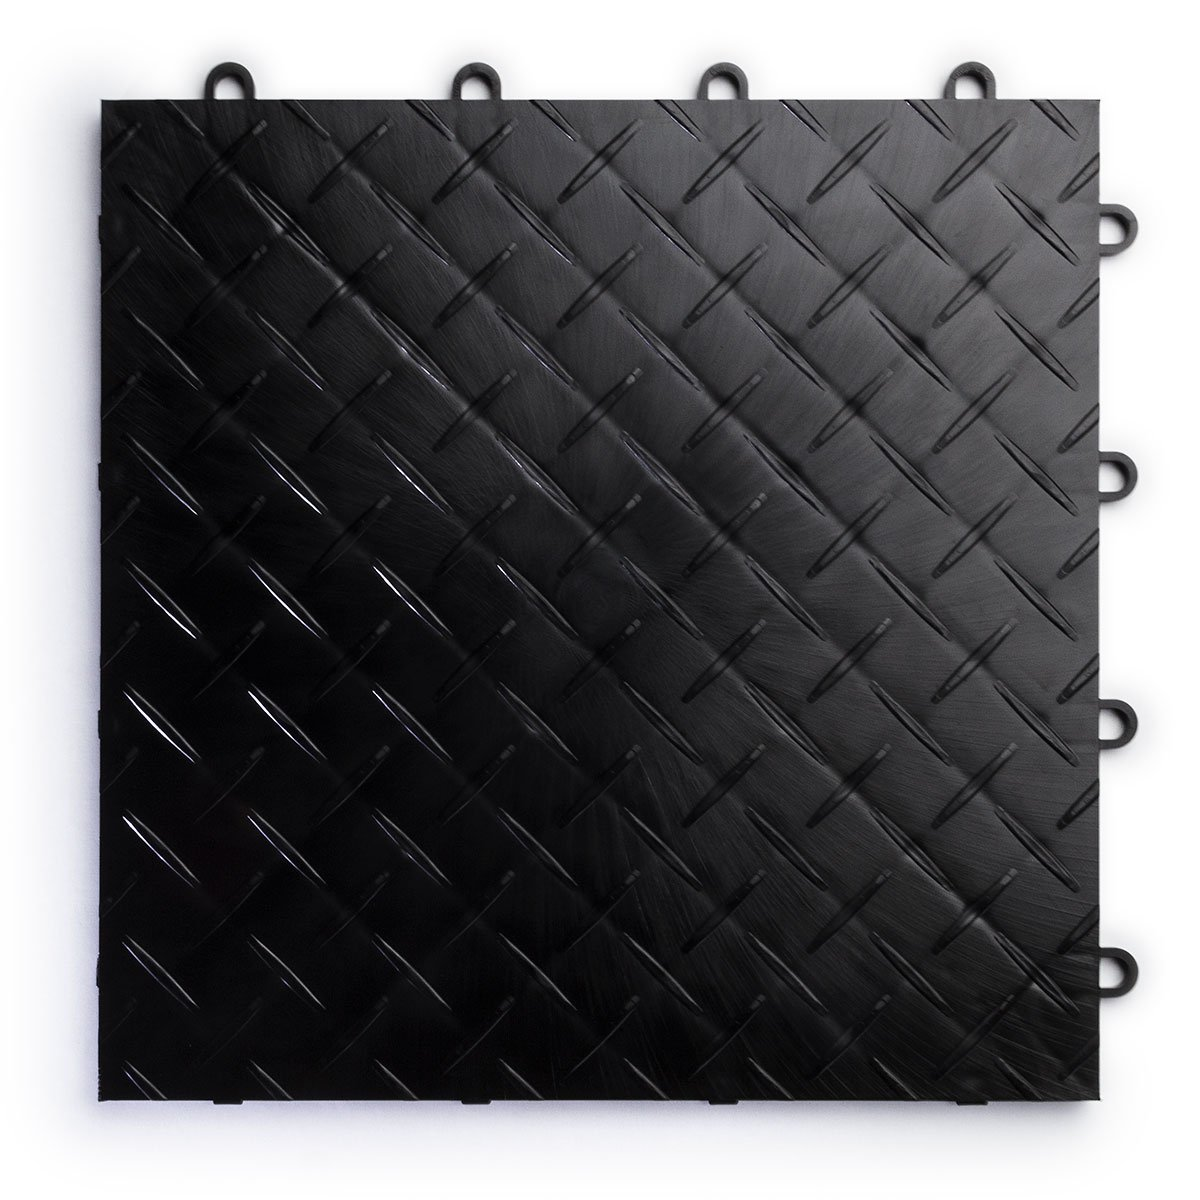 RaceDeck Diamond Plate Design, Durable Interlocking Modular Garage Flooring Tile (48 Pack), Black by RaceDeck